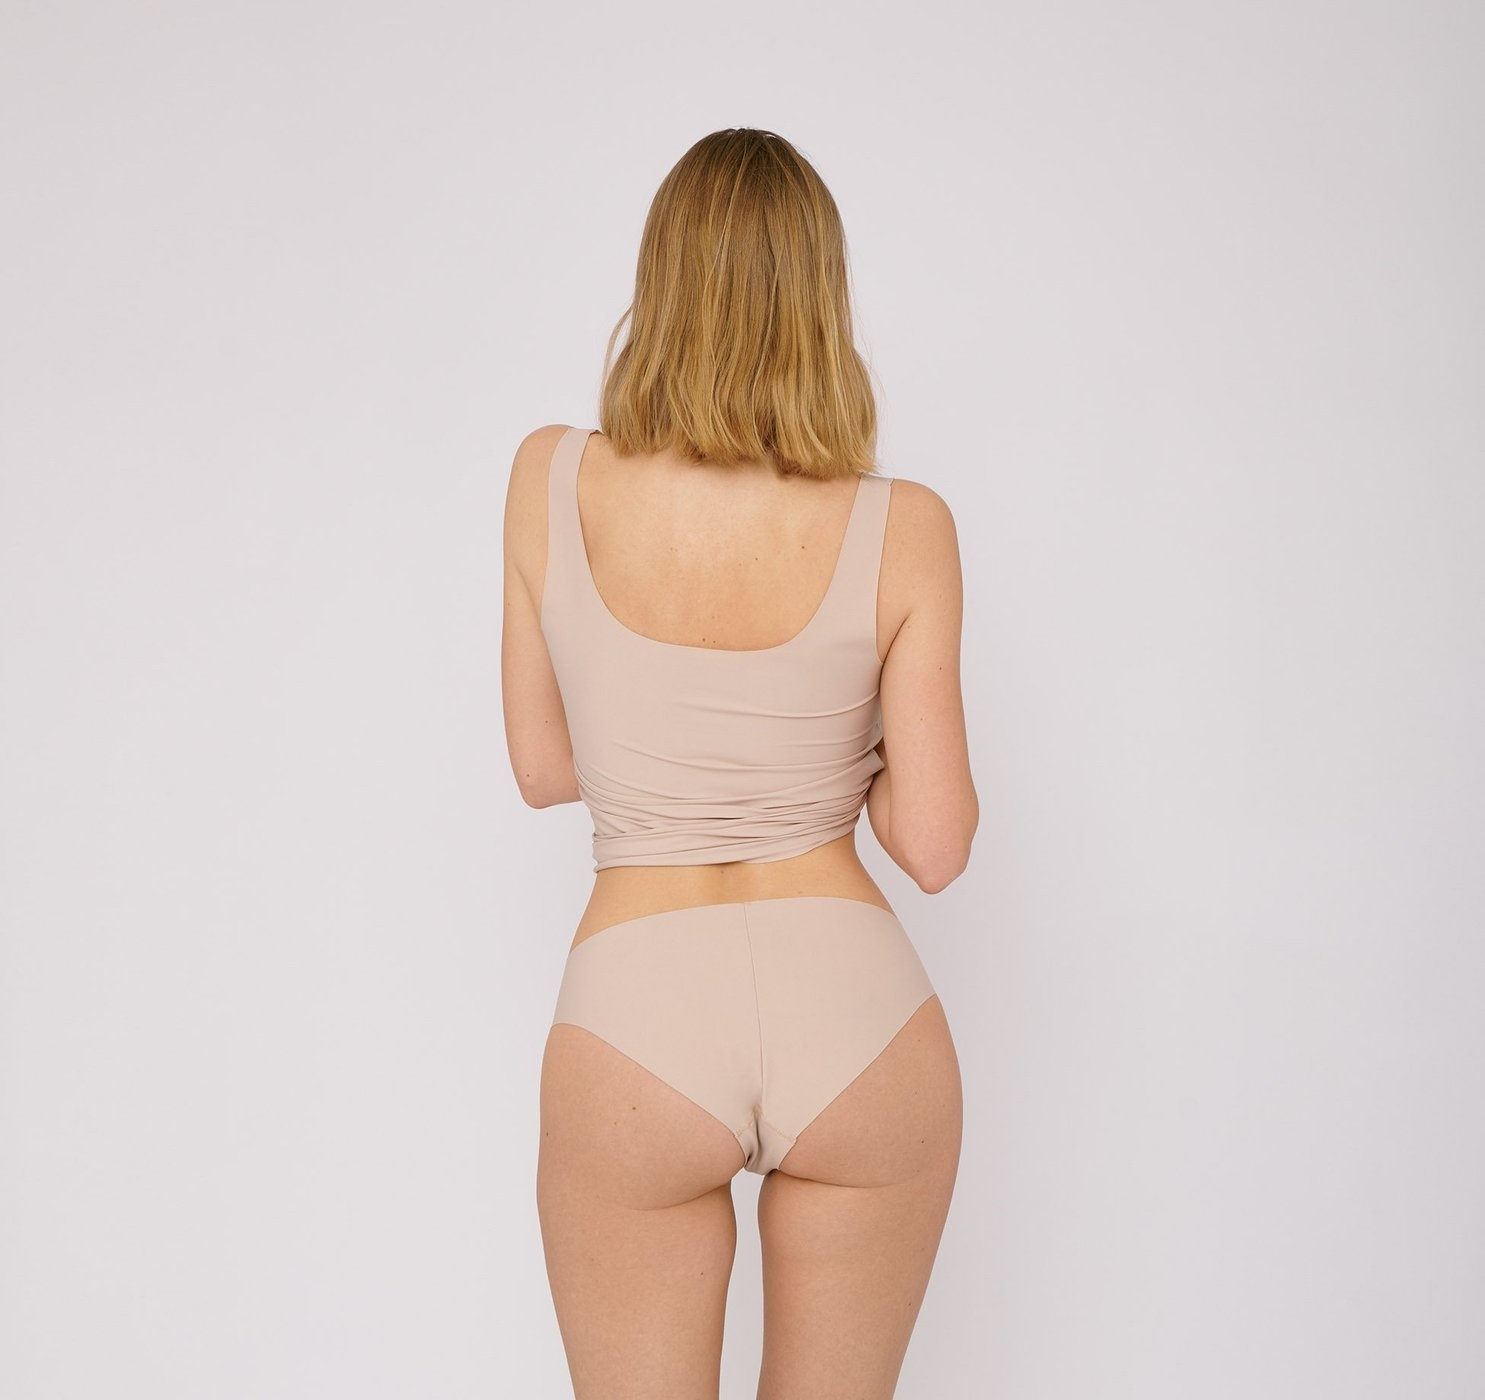 Organic Basics | Invisible Cheeky Briefs 2-pack Rose Nude-1